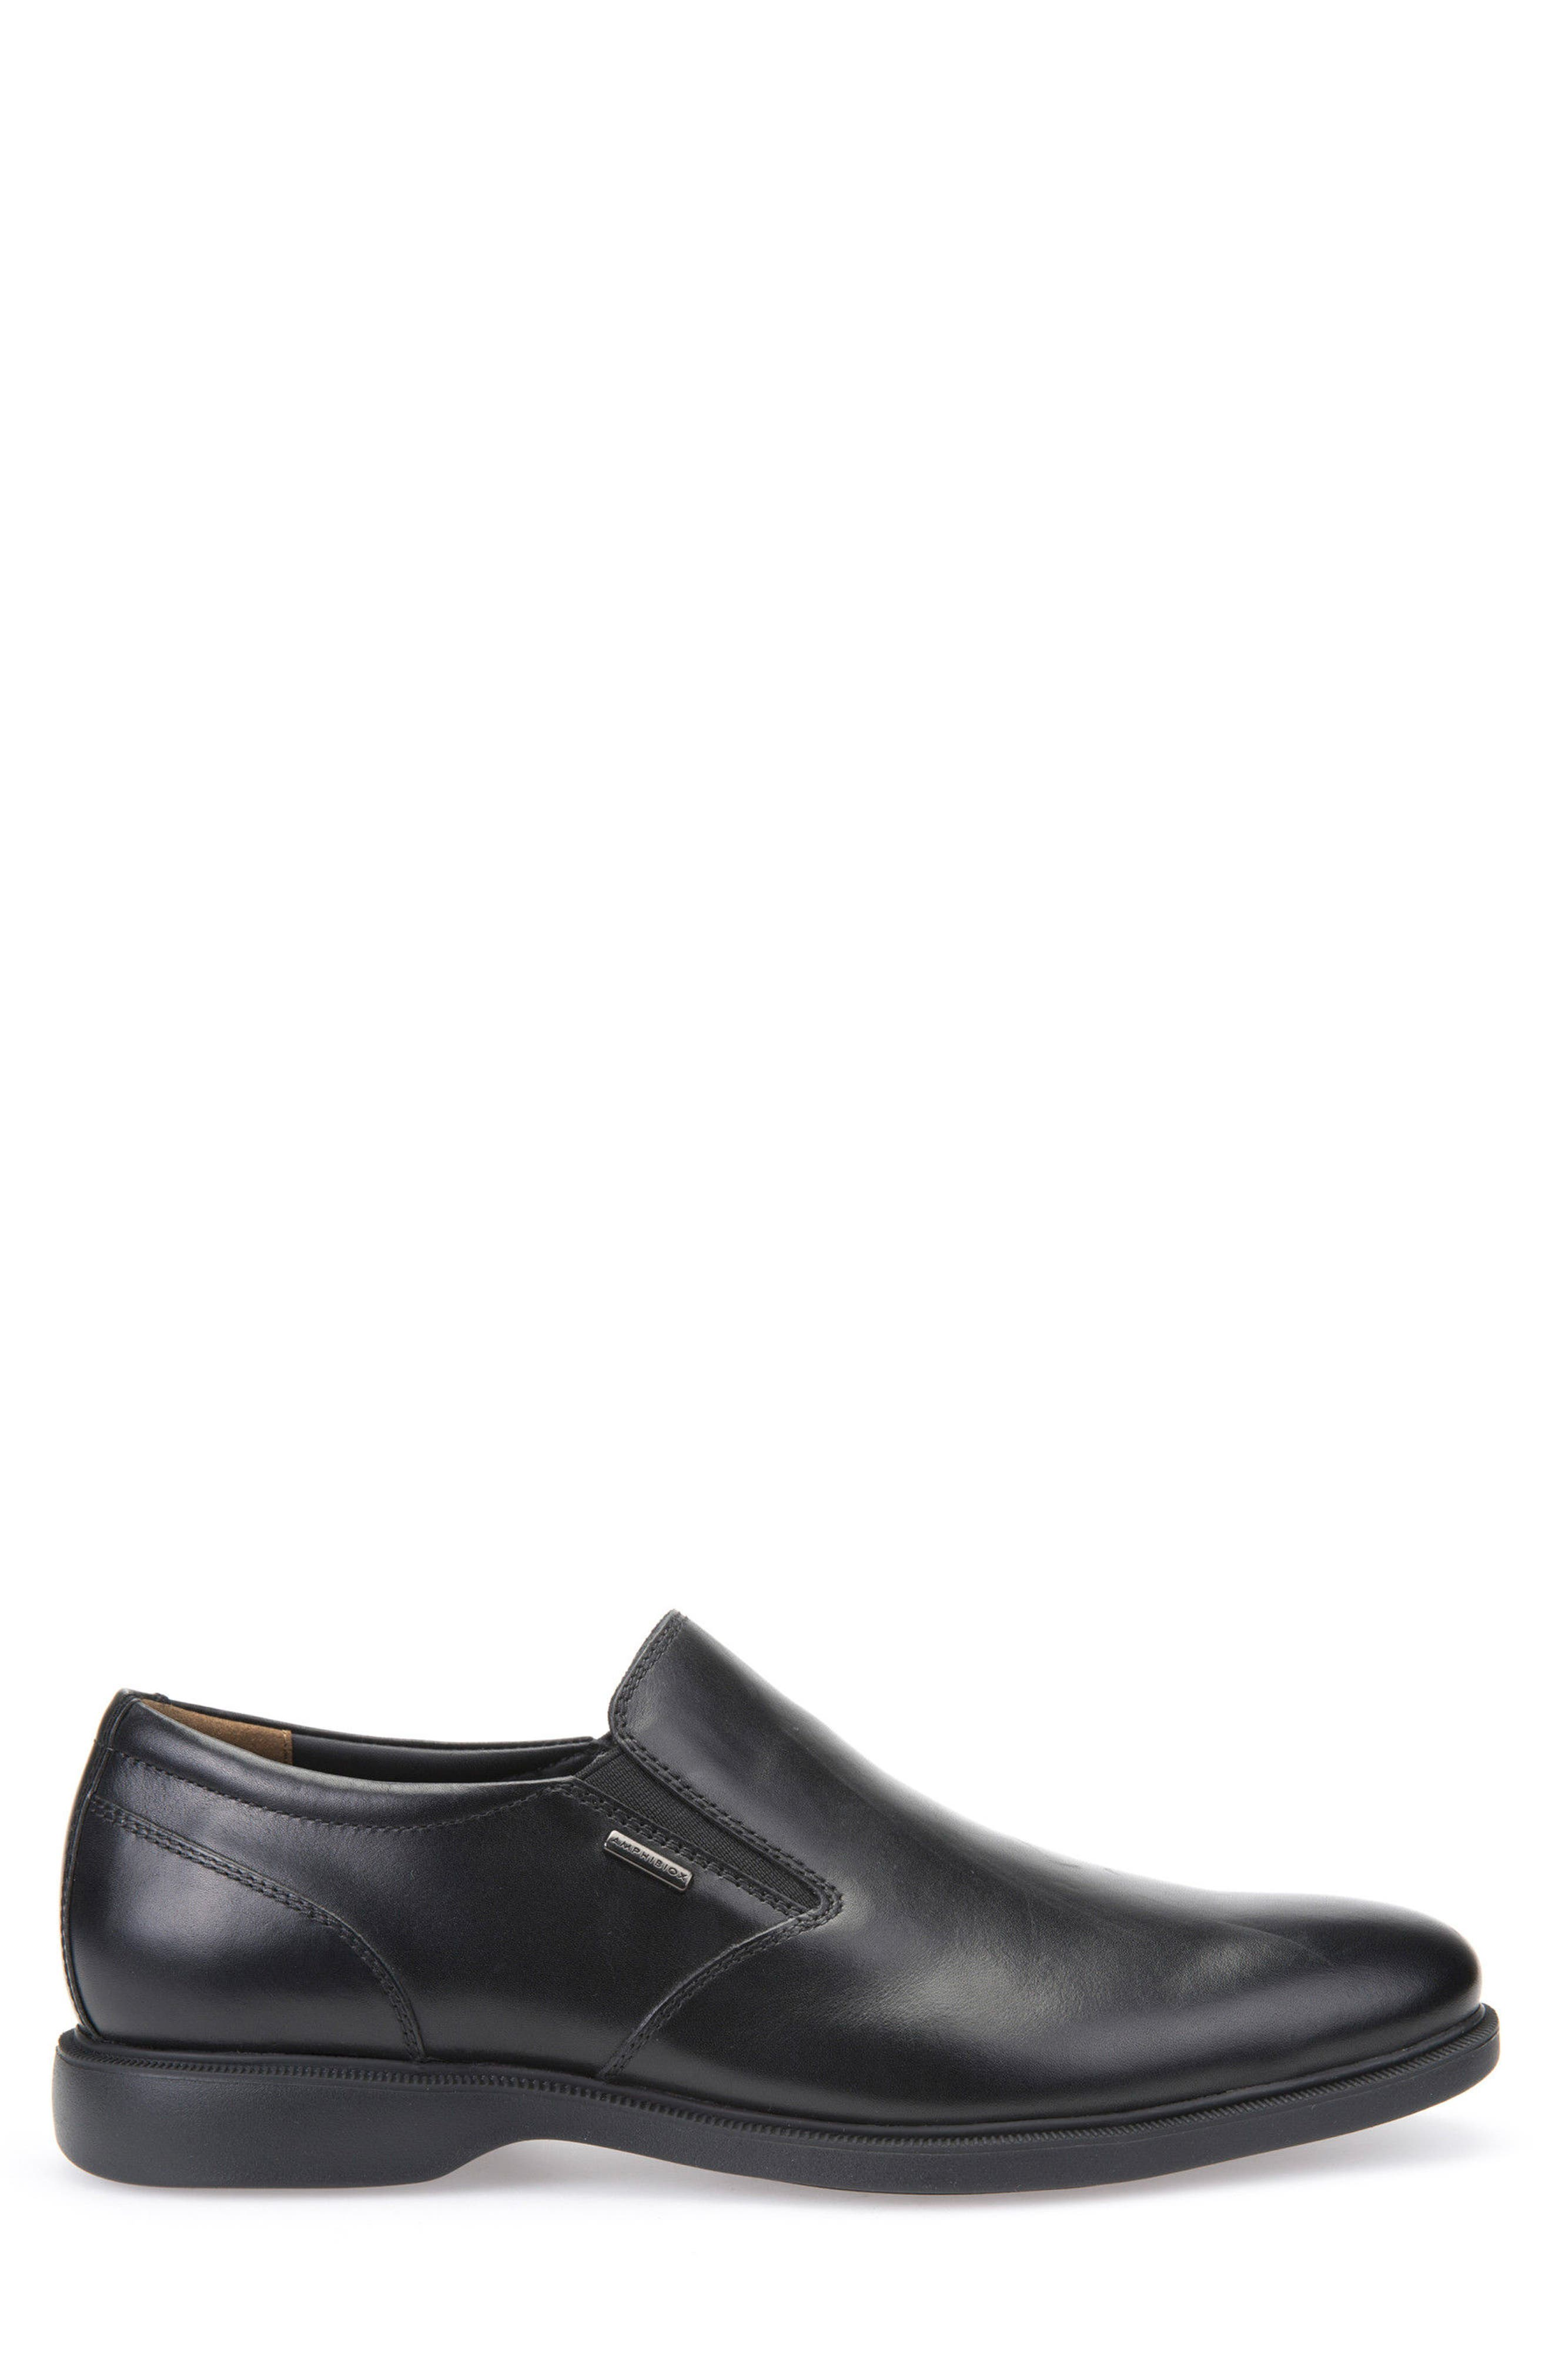 Alternate Image 3  - Geox Brayden ABX Waterproof Venetian Loafer (Men)